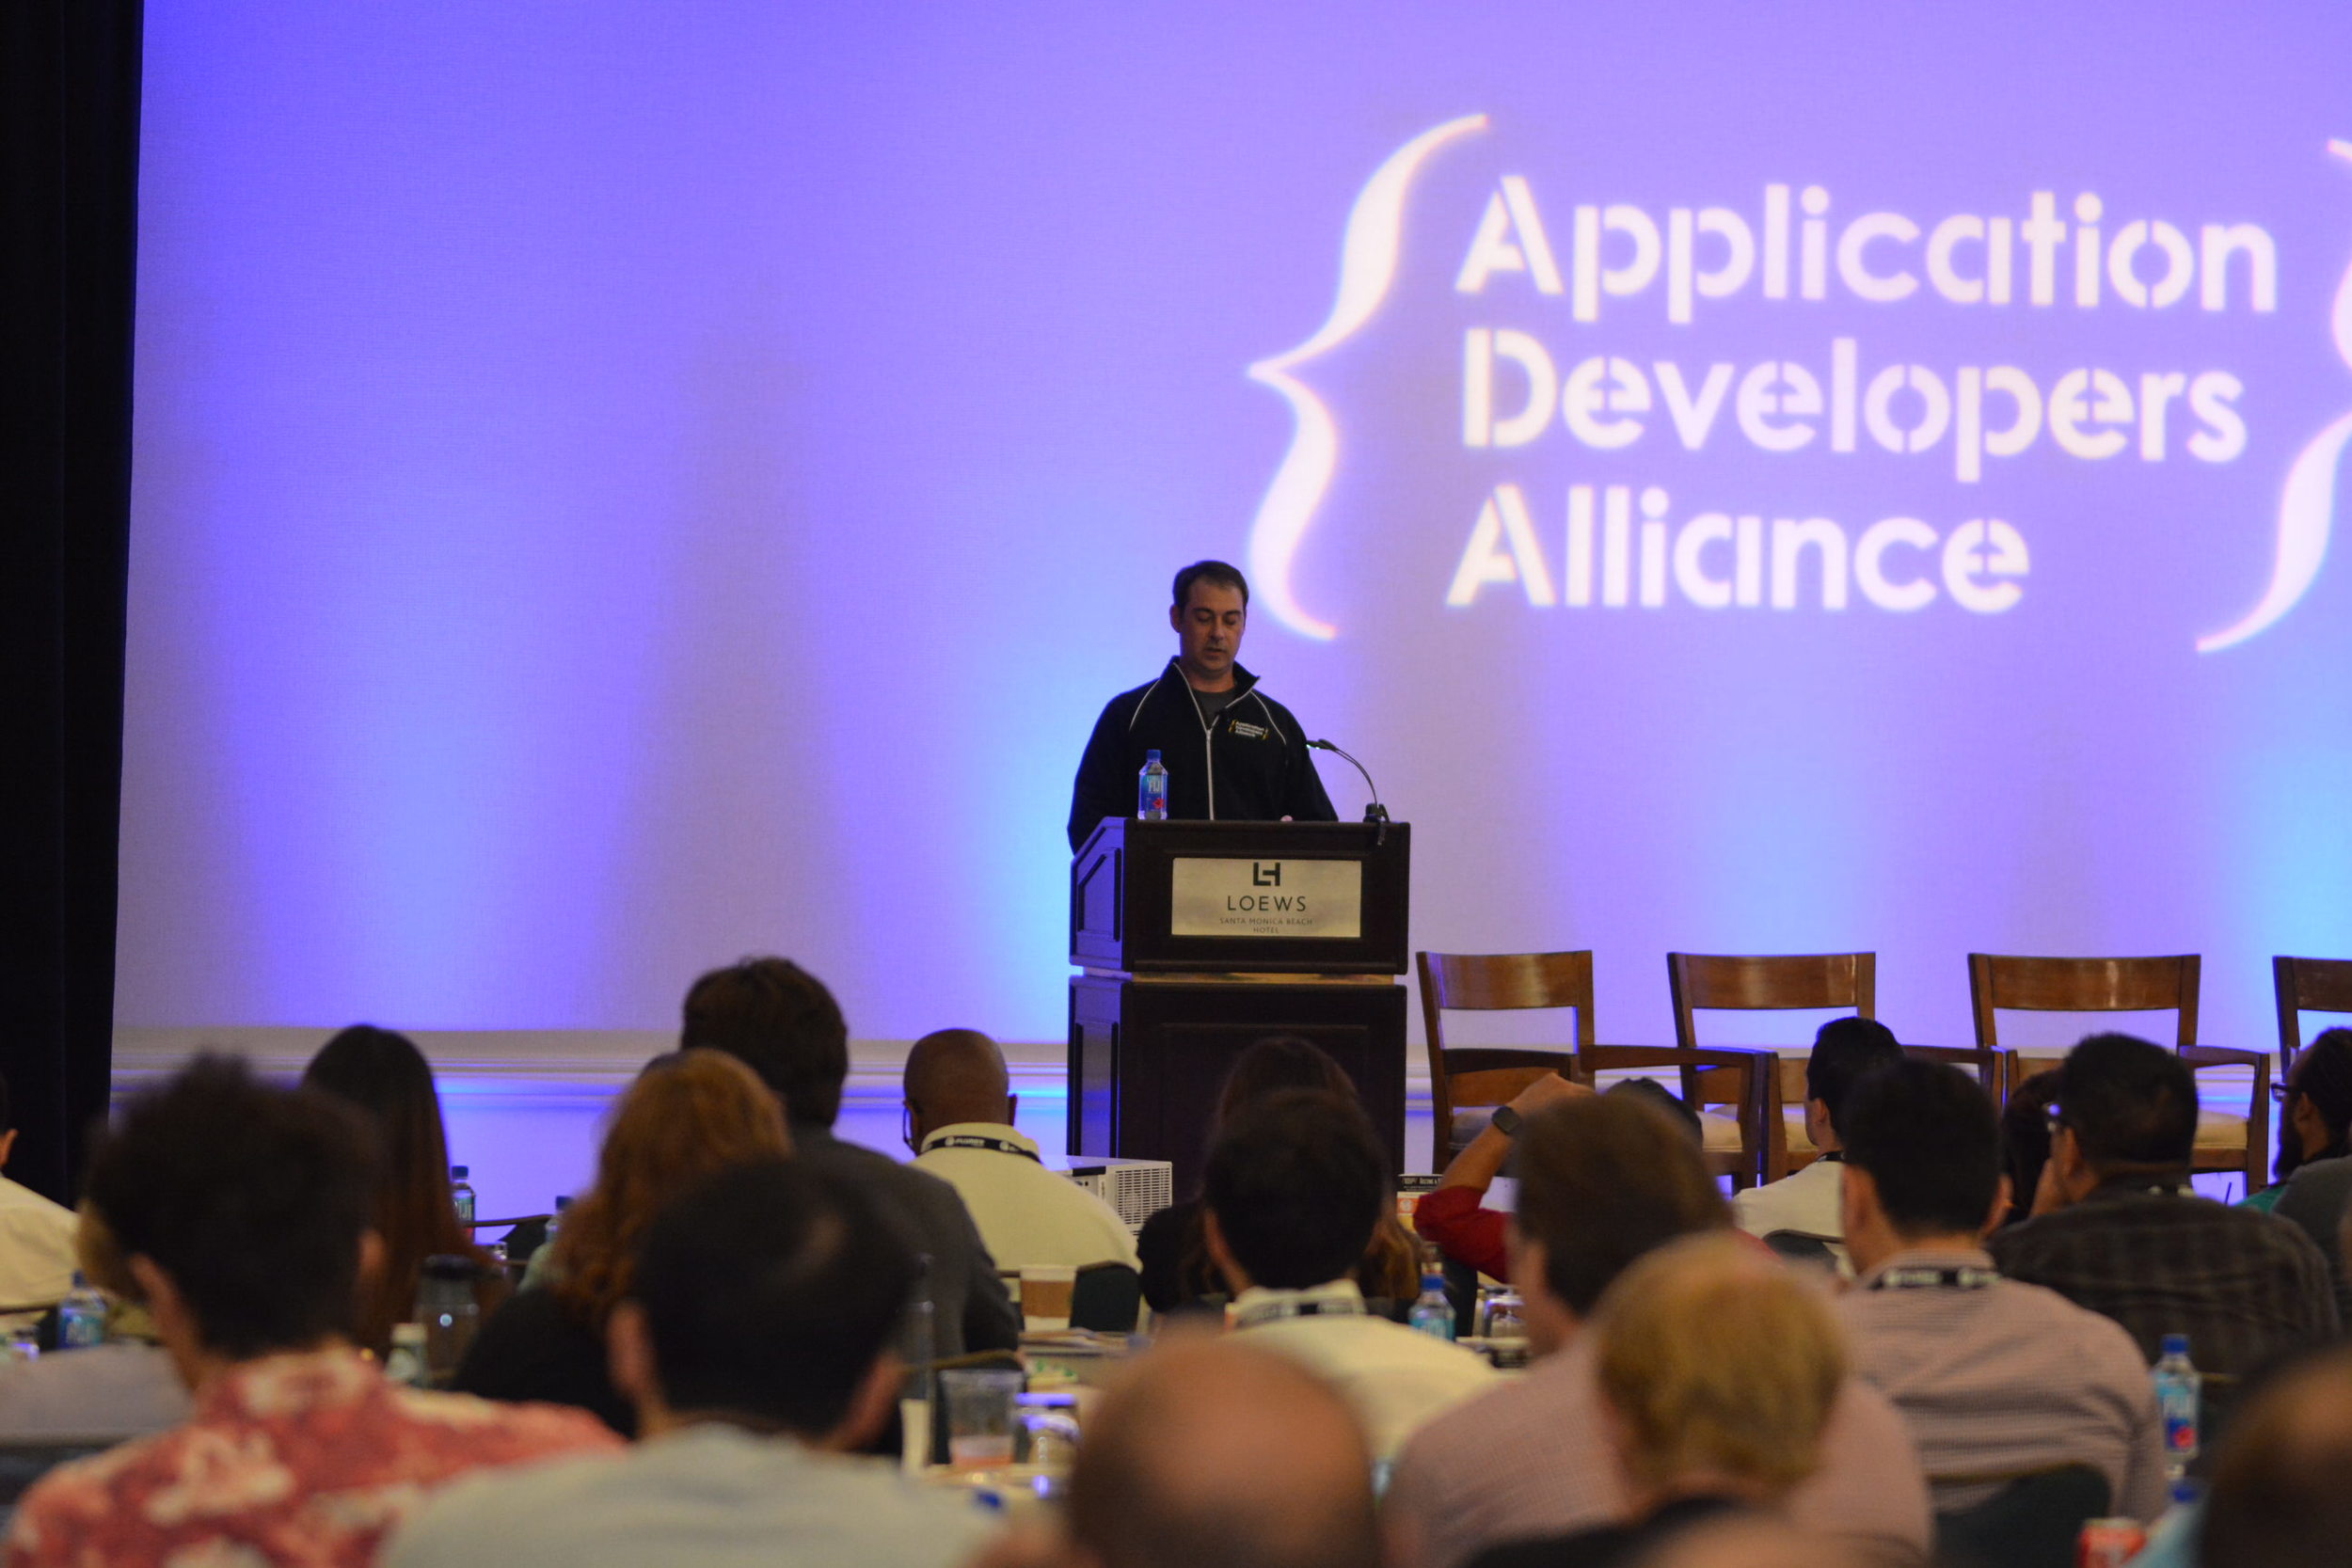 Jake Ward (CEO and President, App Developers Alliance) set the tone for the day with his Opening Remarks